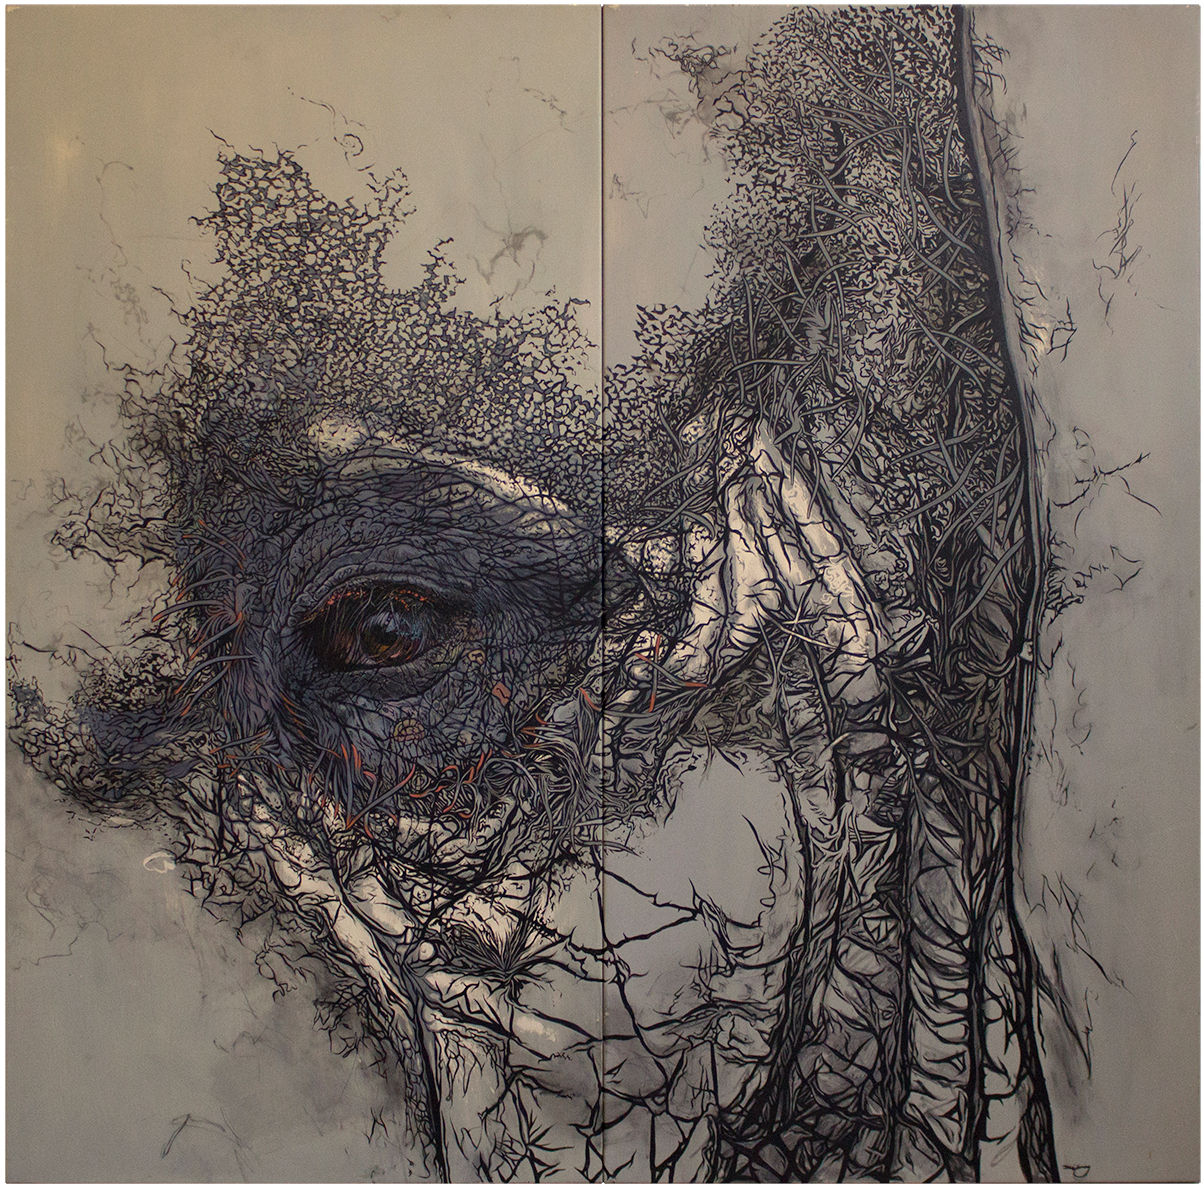 Supernova Sam – Lord of Mass oil on metal panels (diptych) - oil painting by David Le Fleming